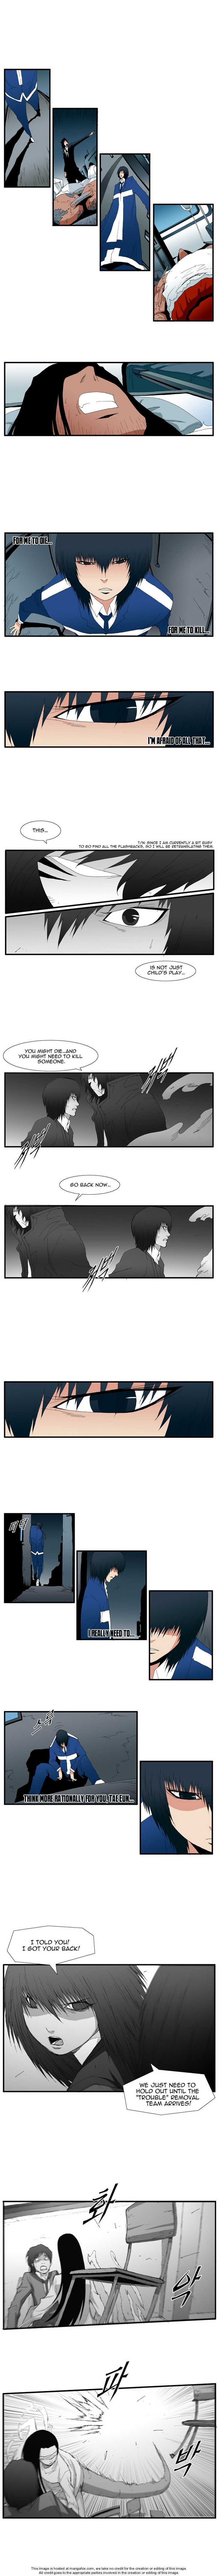 Trace 39 Page 2